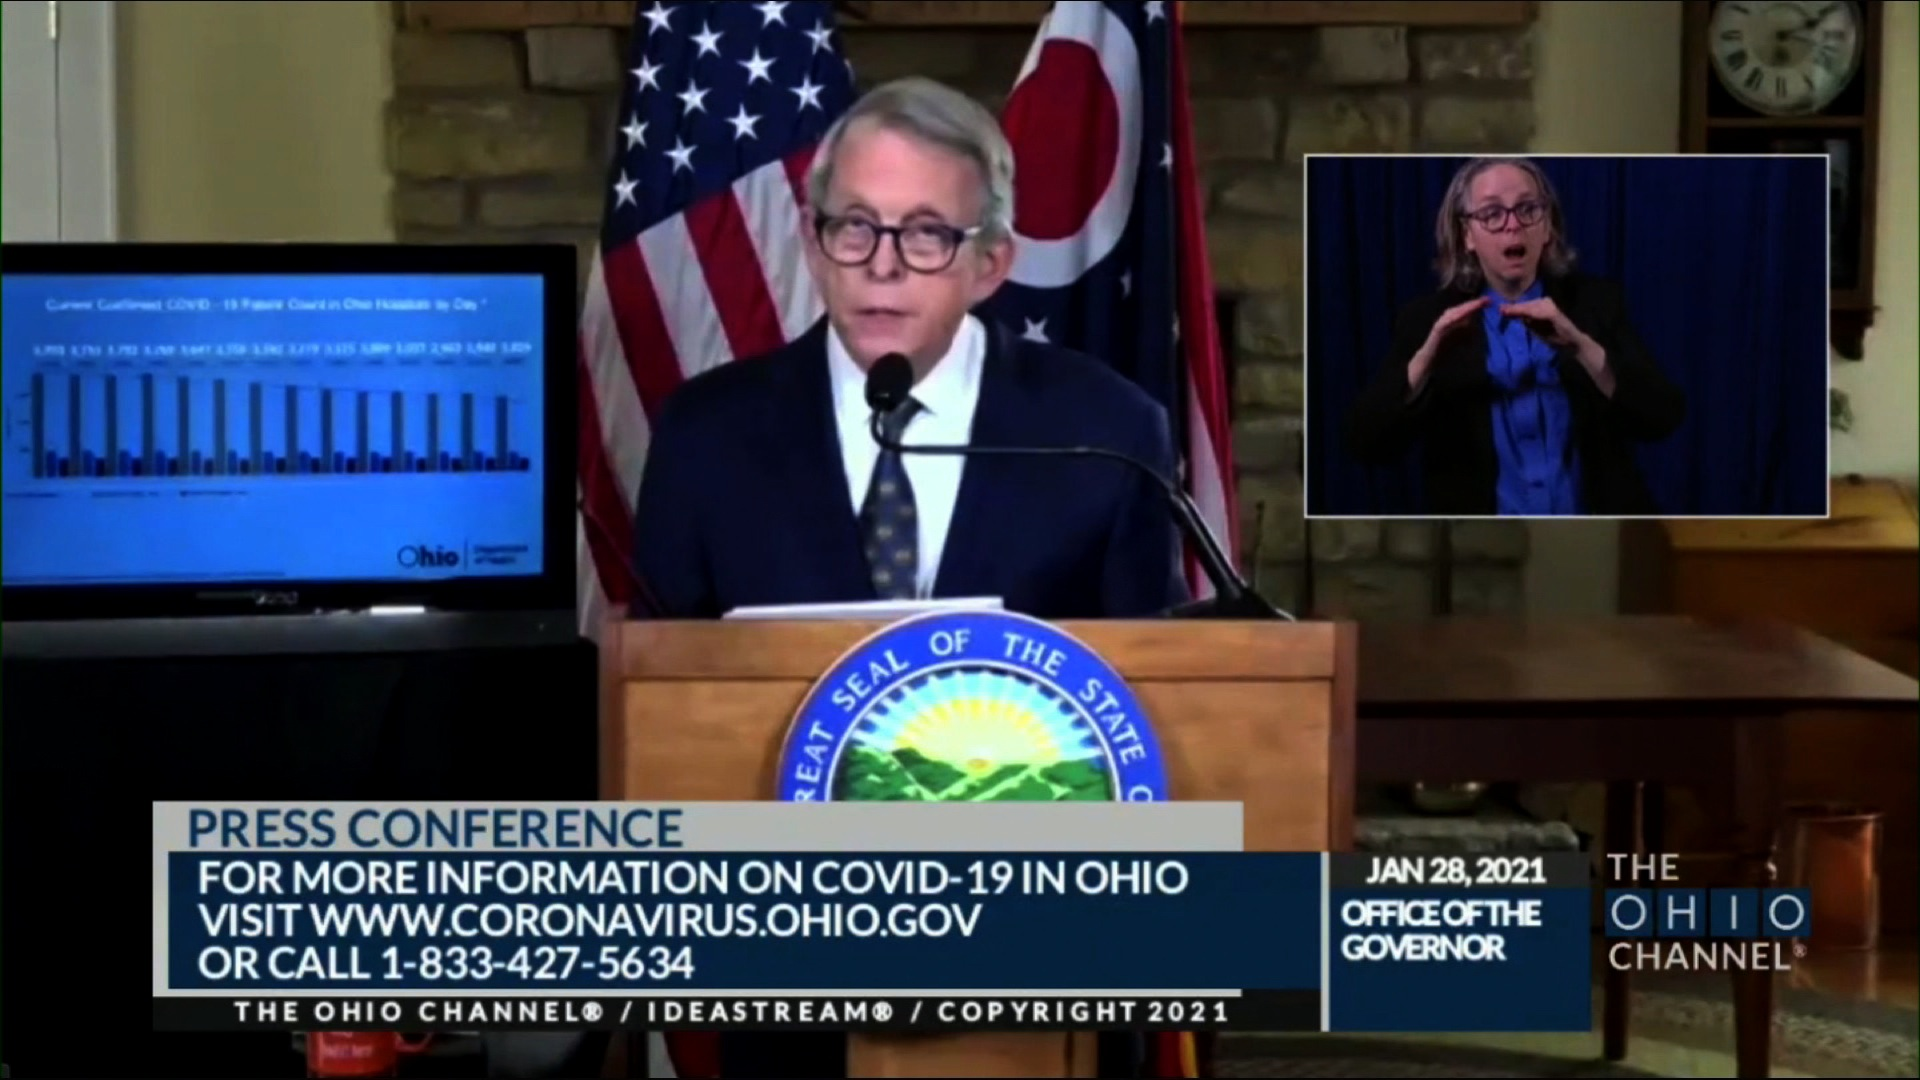 Gov. Mike DeWine speaks during a press conference in Columbus, Ohio, on January 28.